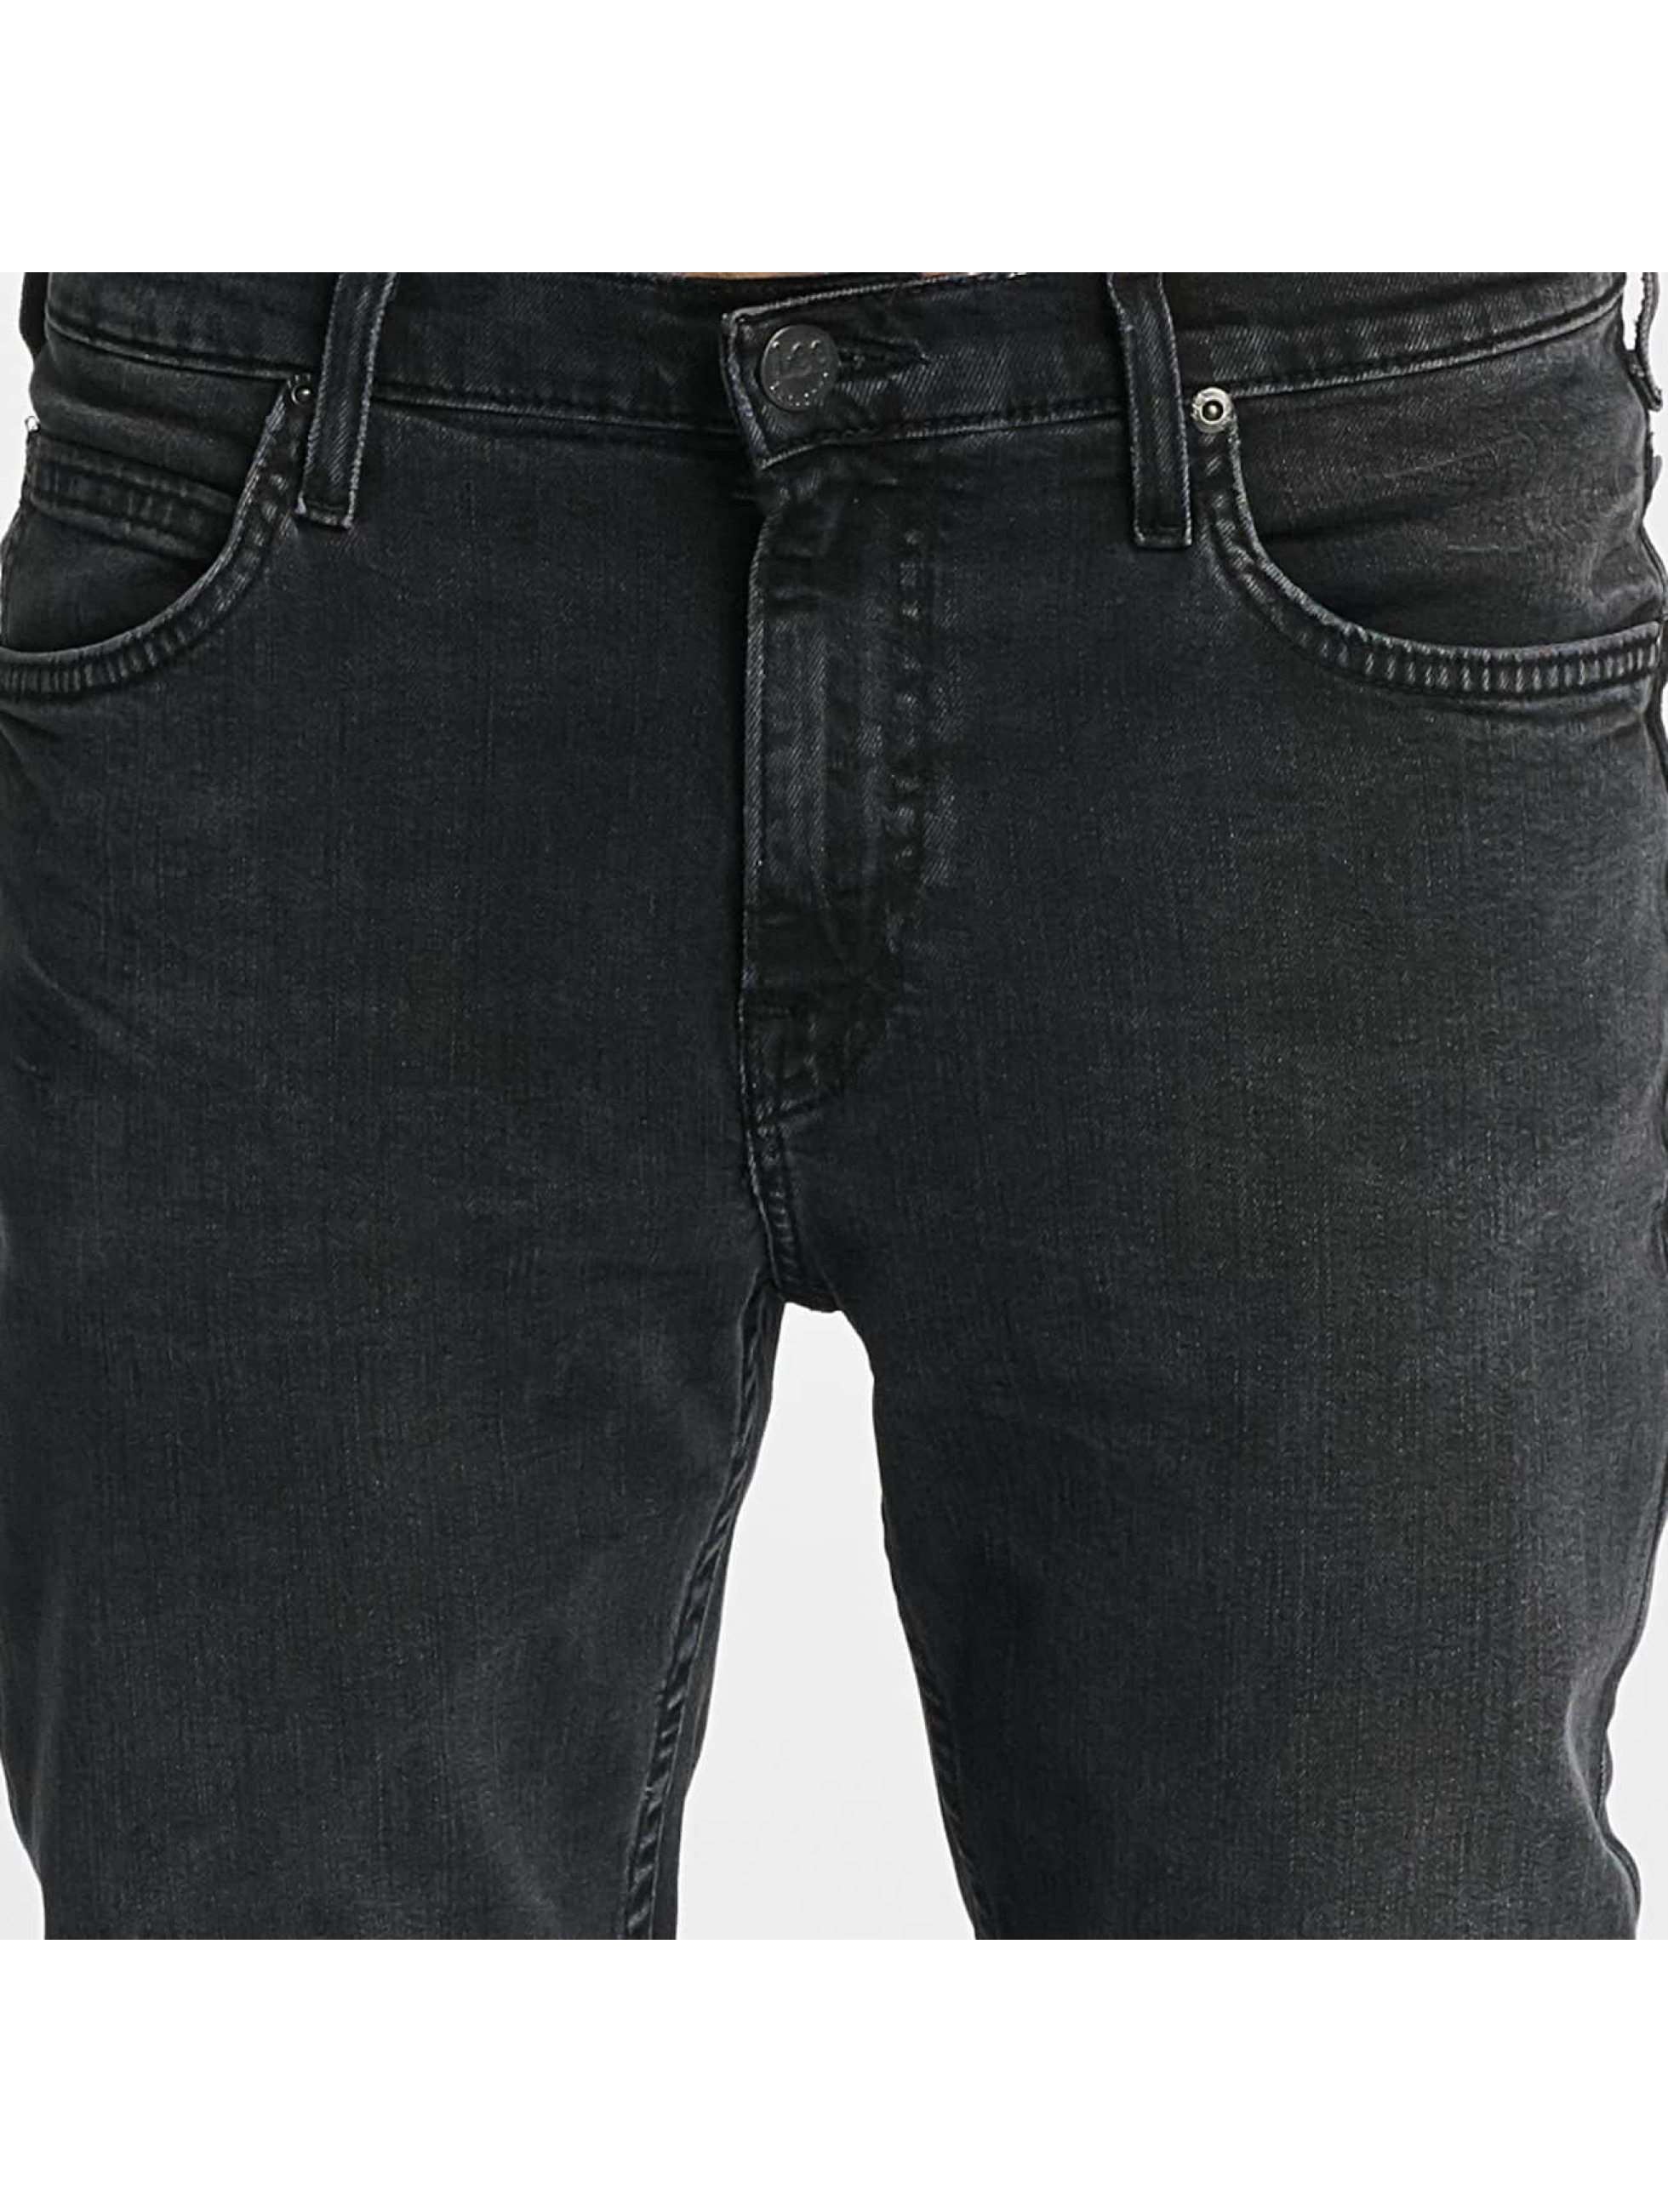 Lee Slim Fit Jeans Rider grau